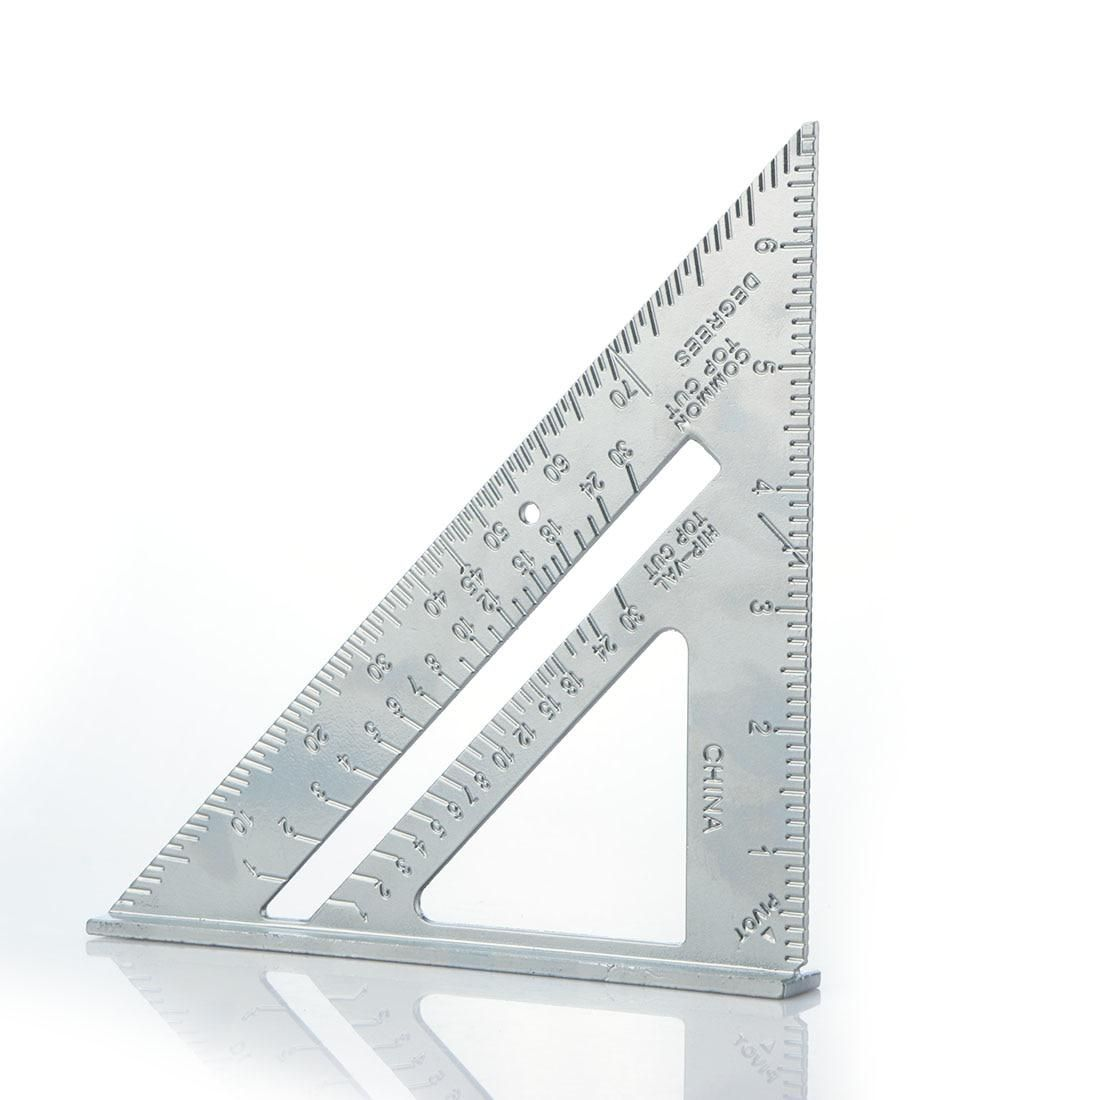 7 Inch Speed Square Triangle Rule Carpenter Measuringtools Rafter Speedlite Layout Tool Triangle Angle Carpenter Triangle Rules Speed Square Triangle Angles